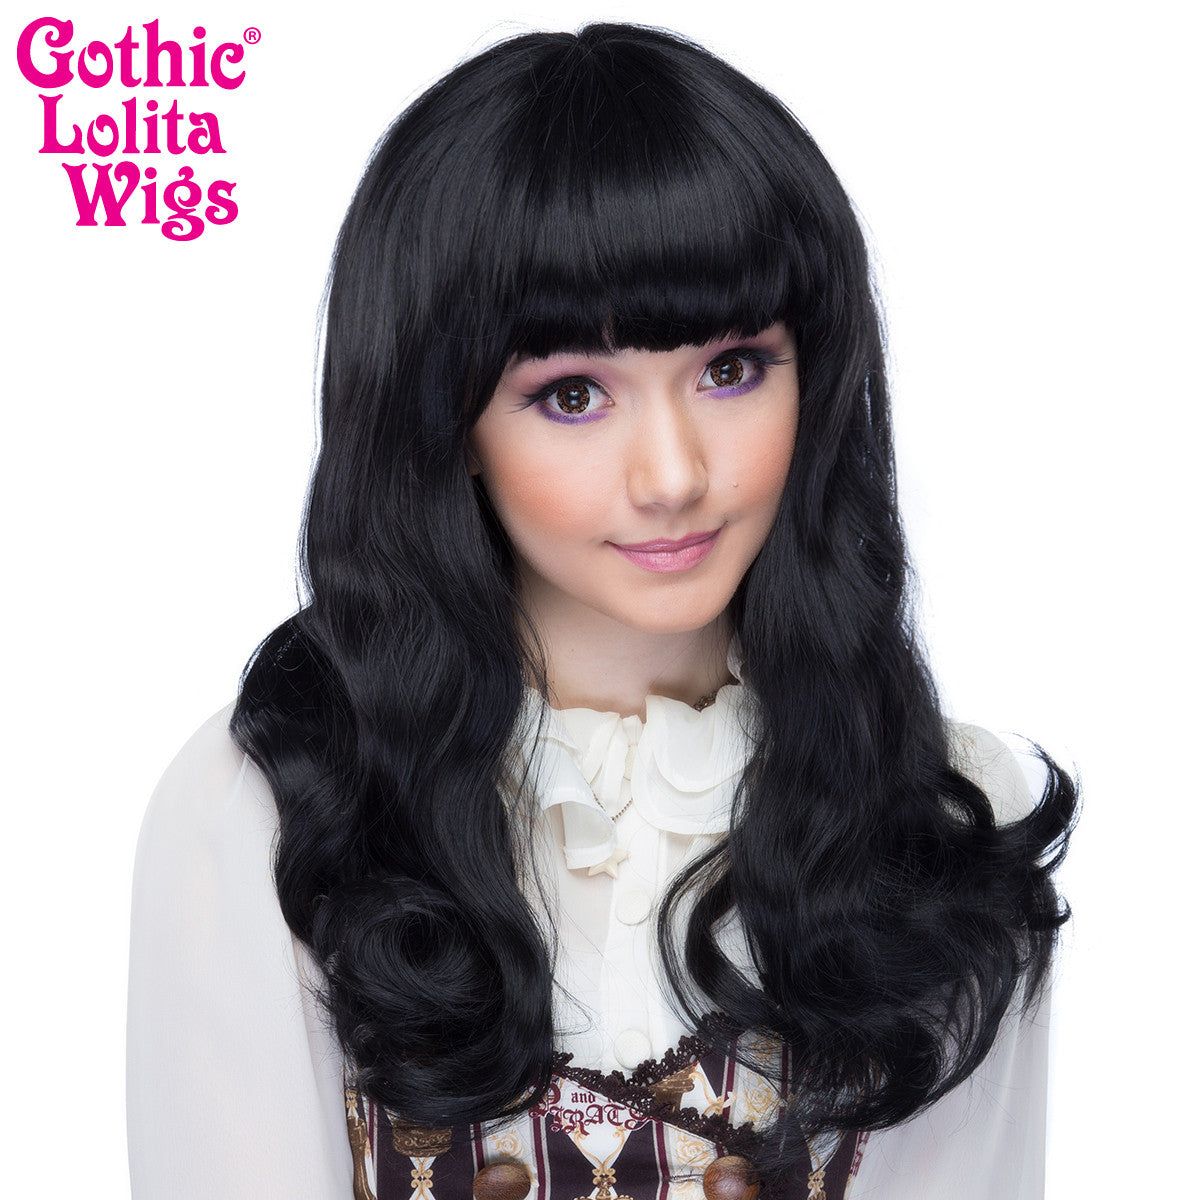 Gothic Lolita Wigs® <br> Straight Classic™ Collection - Black Mix -00030